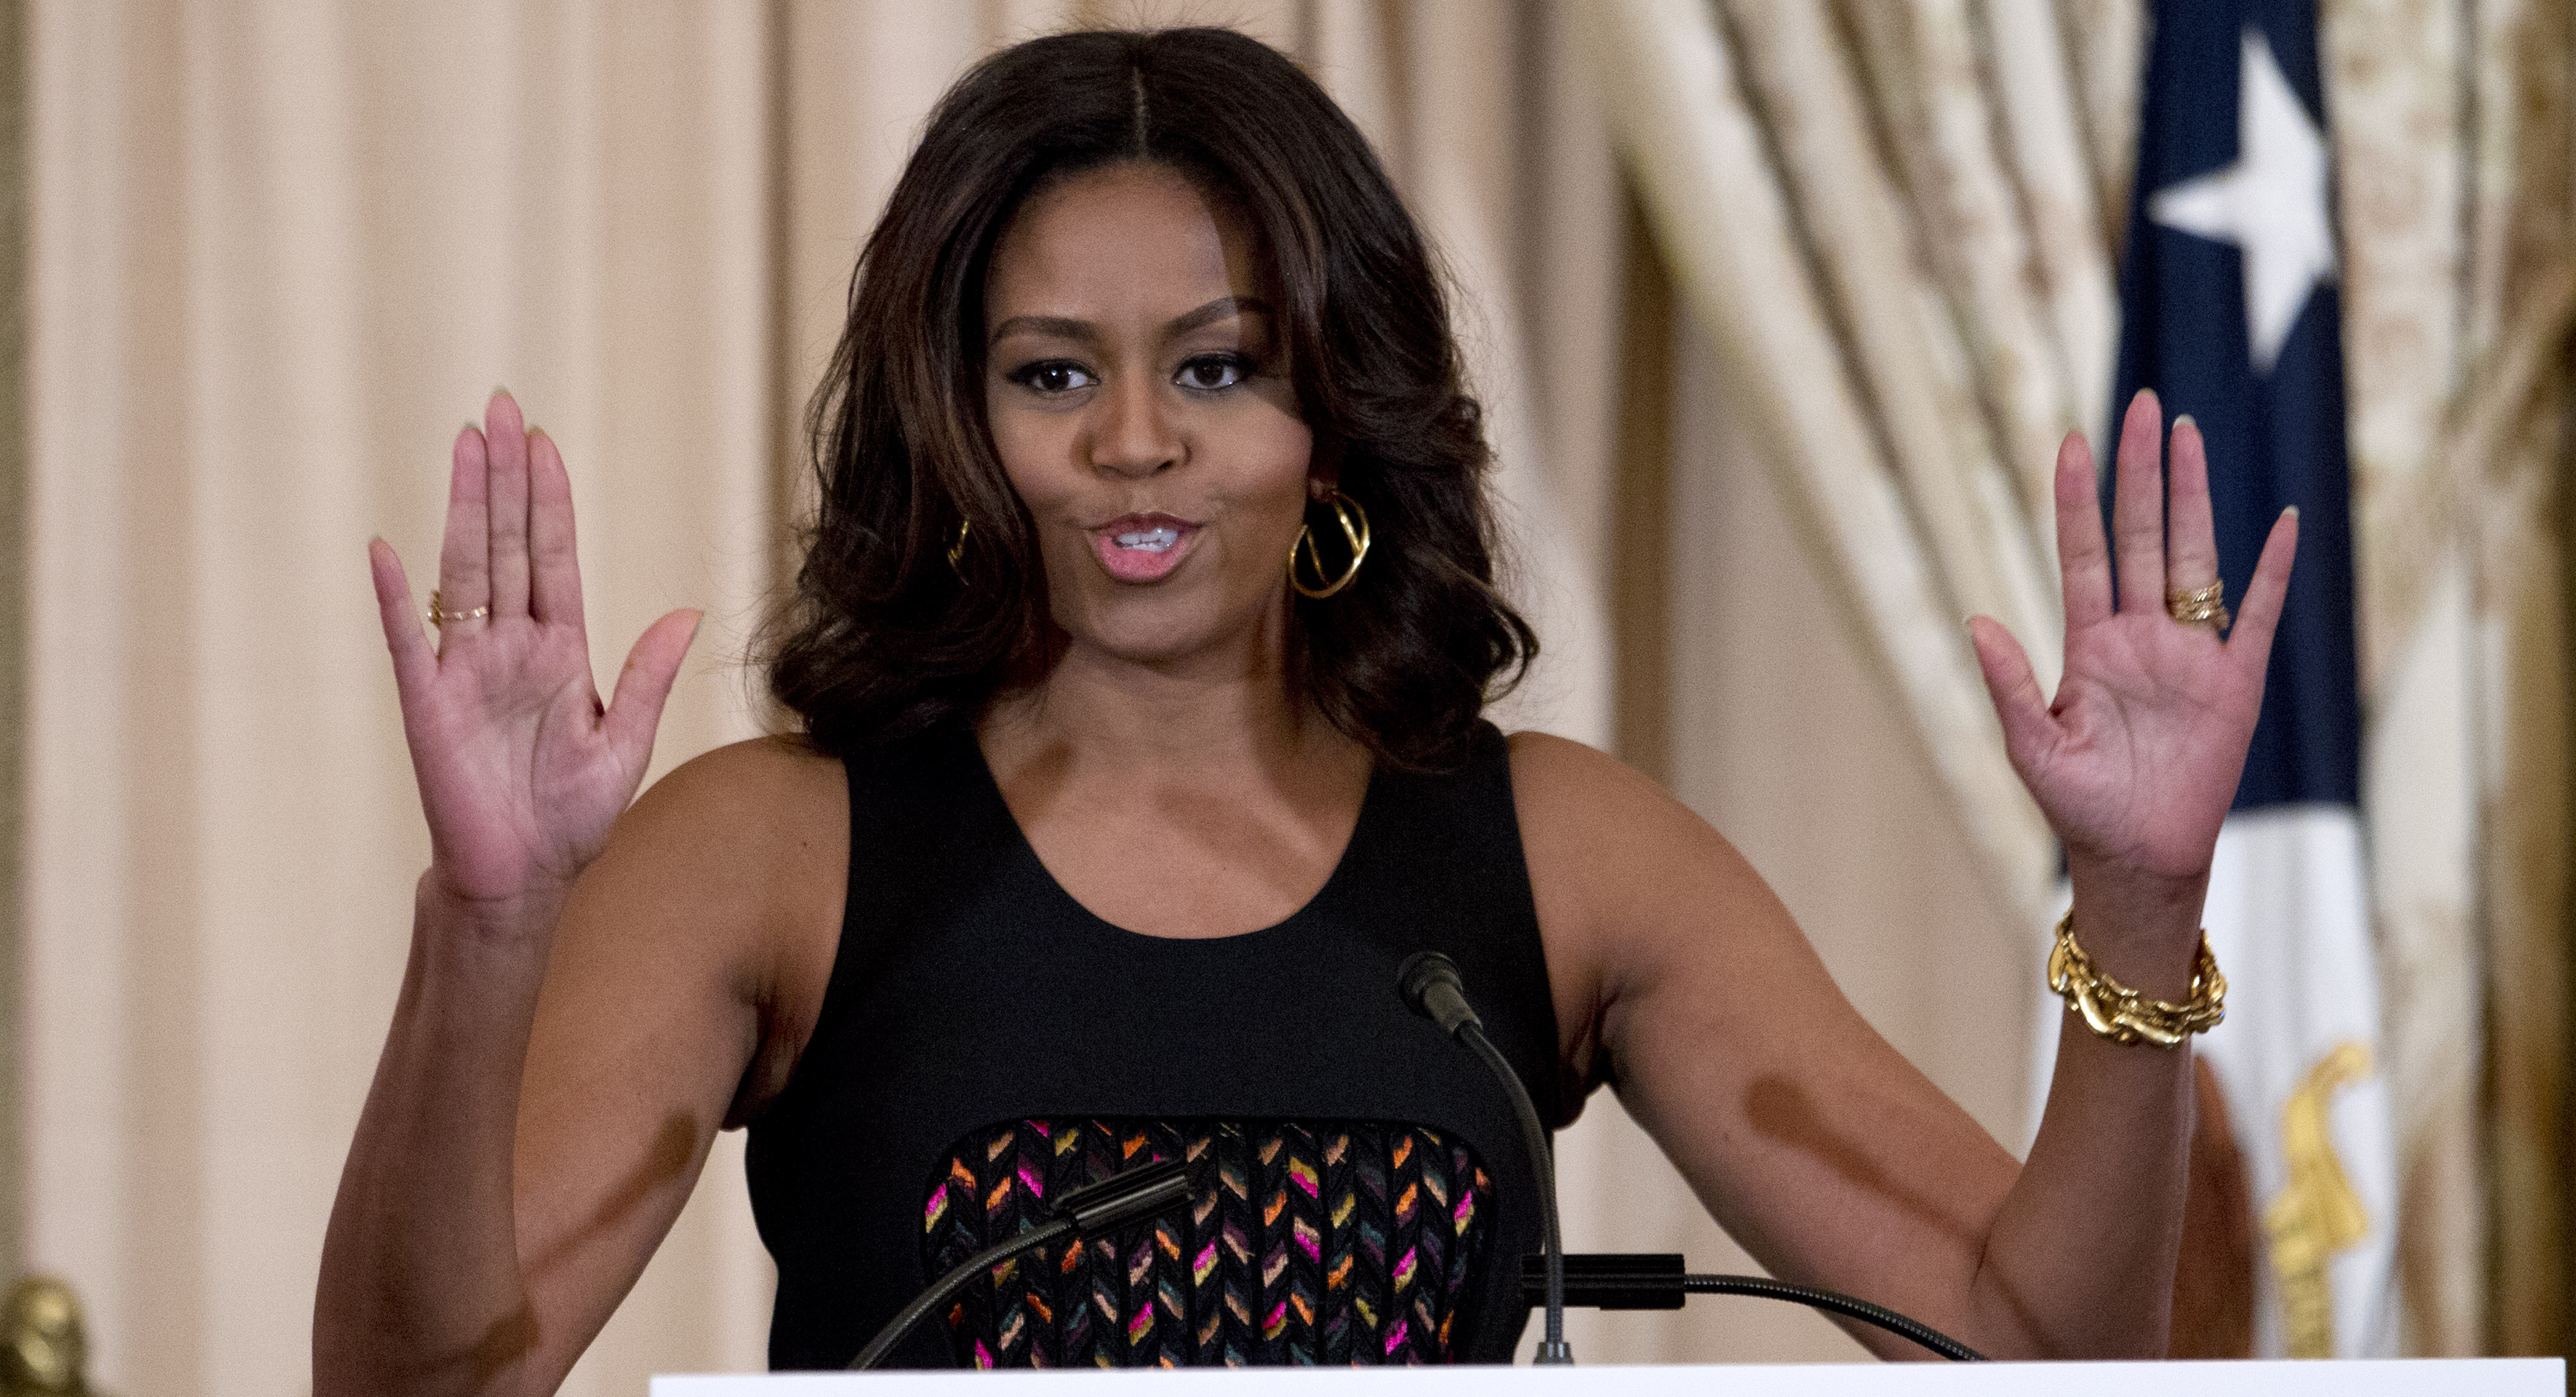 Pictures Of Michelle Obama